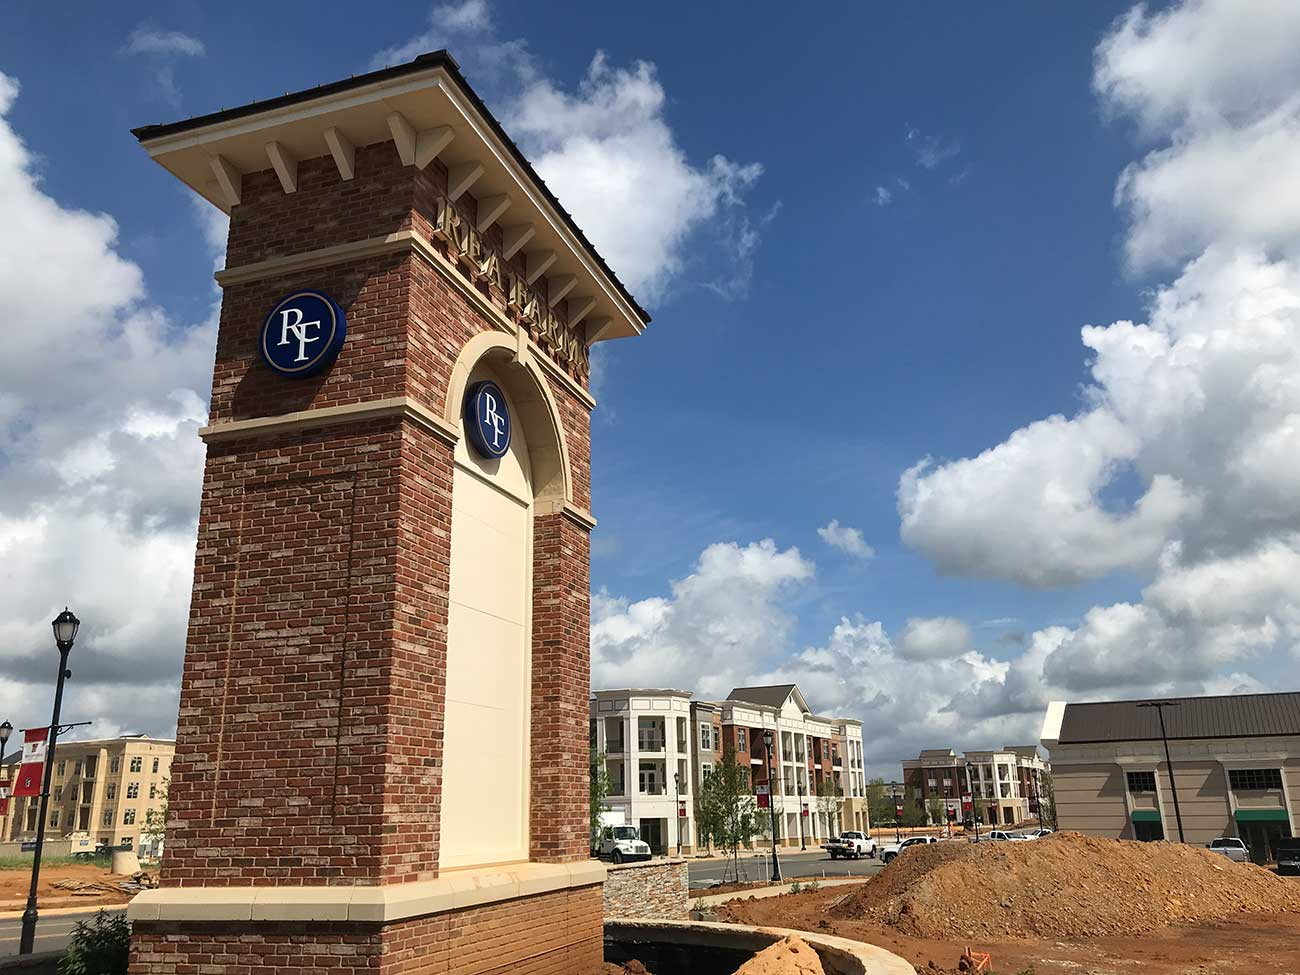 Rea Farms is building a self-contained town in south Charlotte. Will it break the suburban mold?